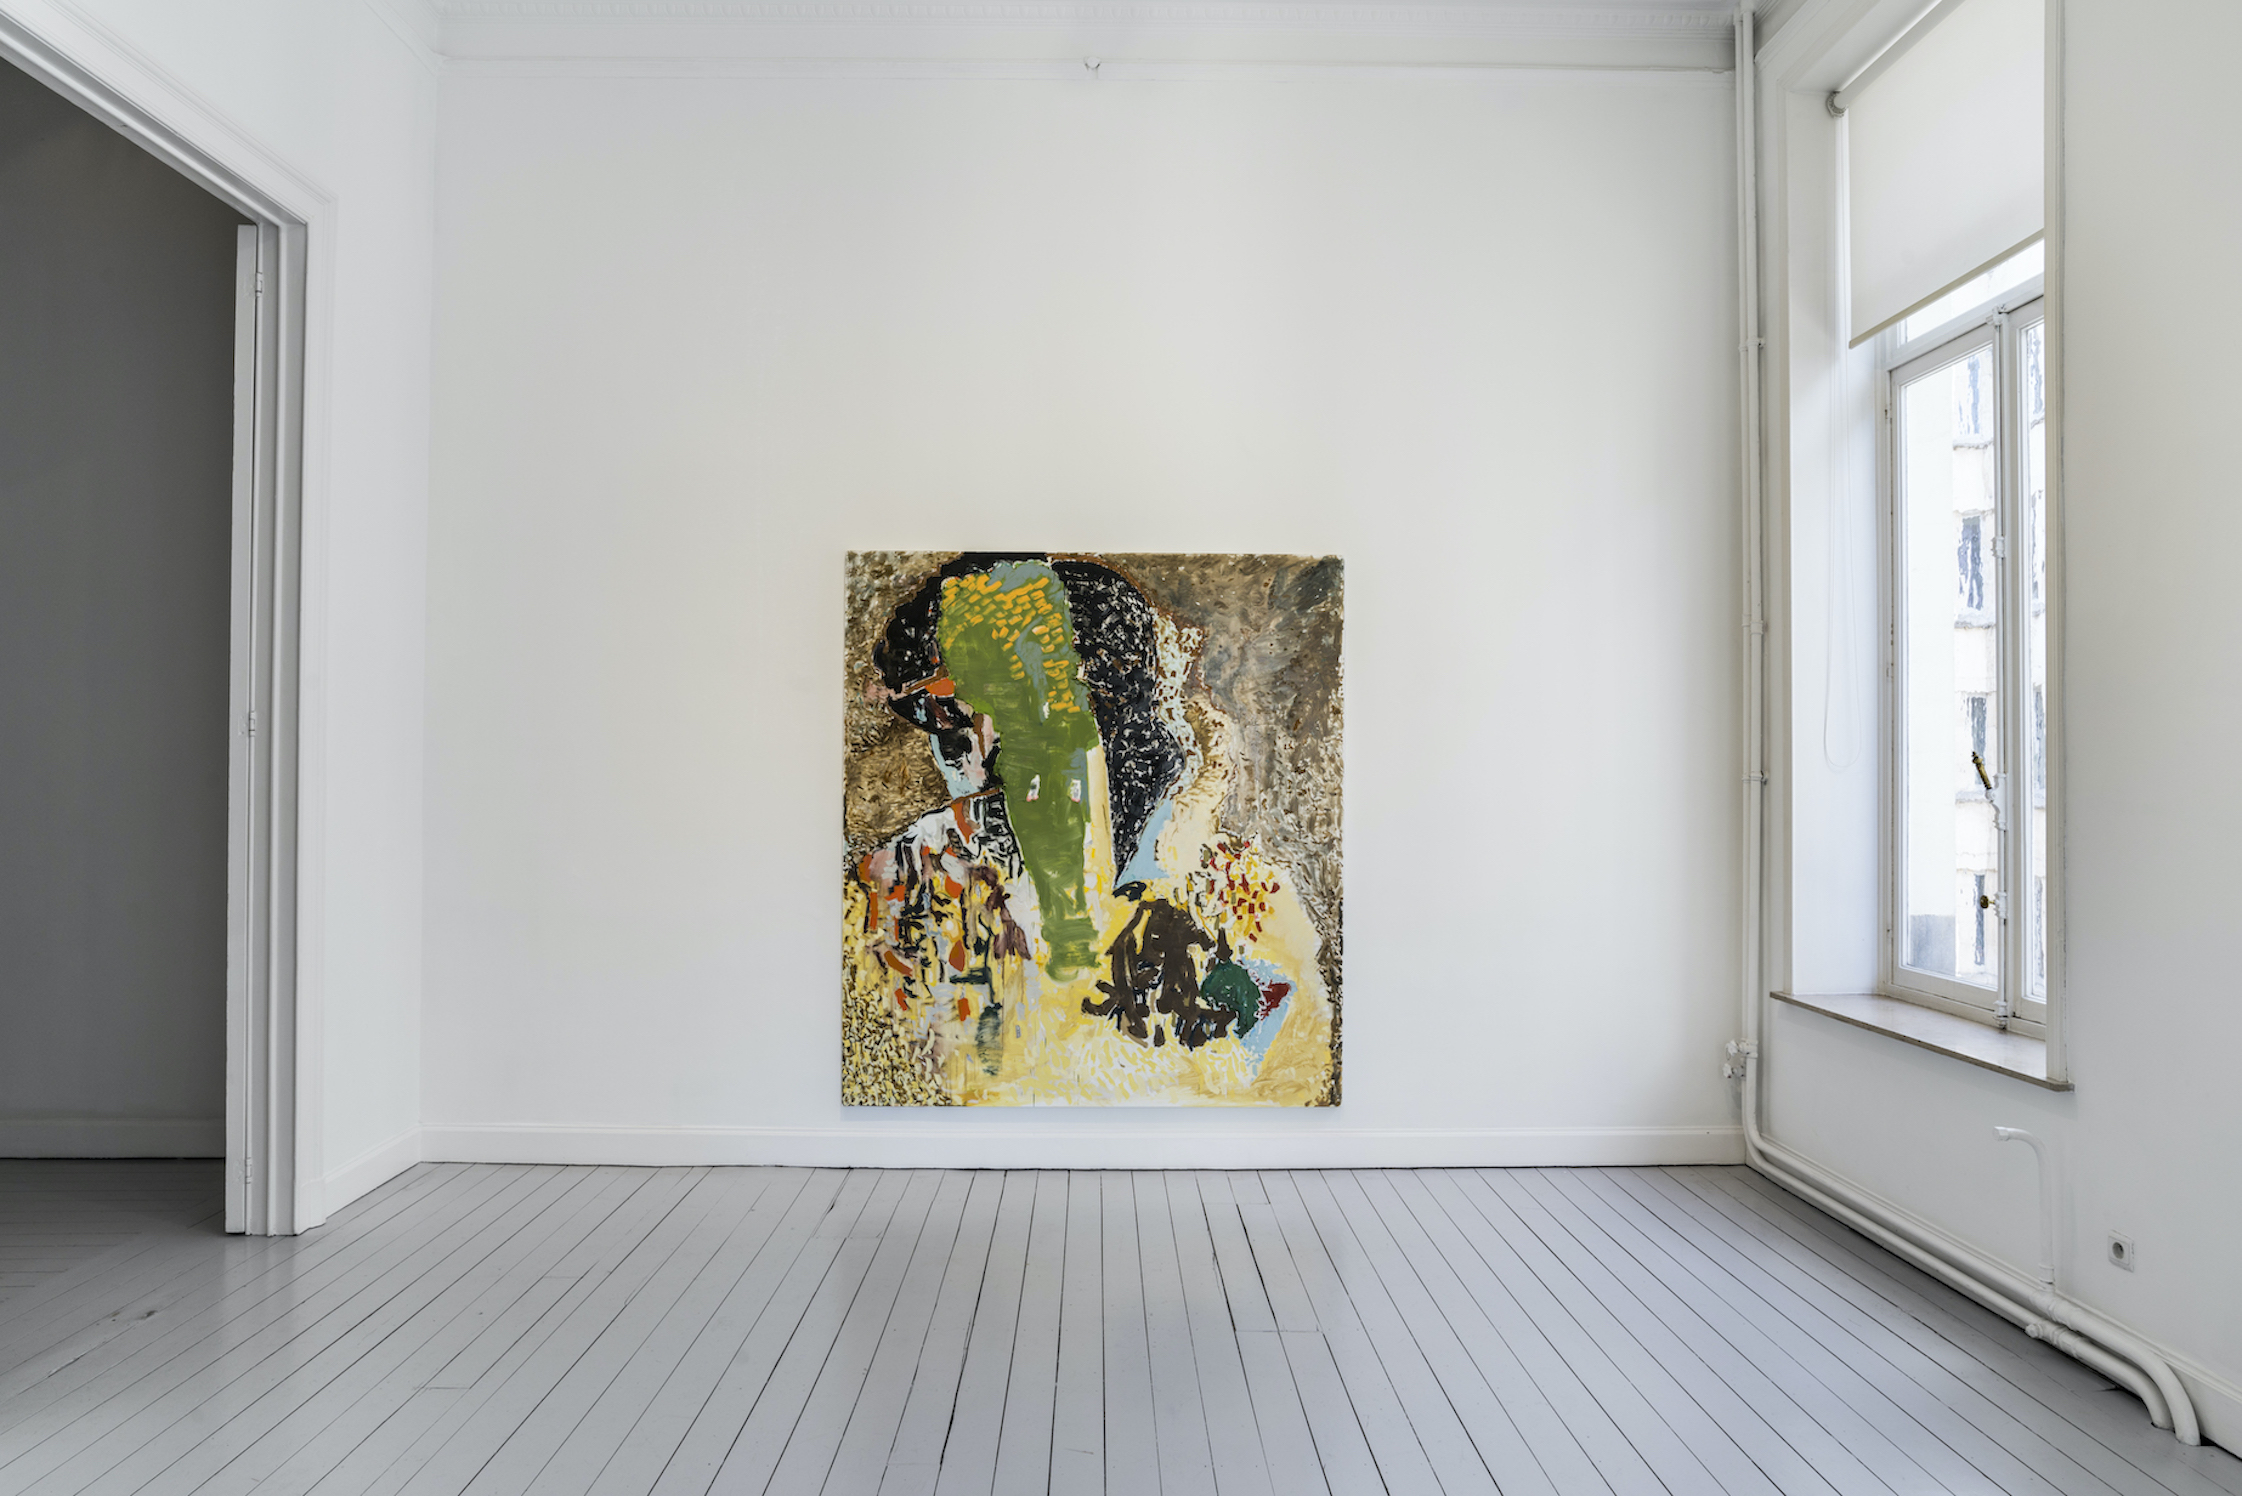 Installation View 1: Richard Aldrich, at Gladstone Gallery, Brussels, 2020 Courtesy the artist and Gladstone Gallery, New York and Brussels